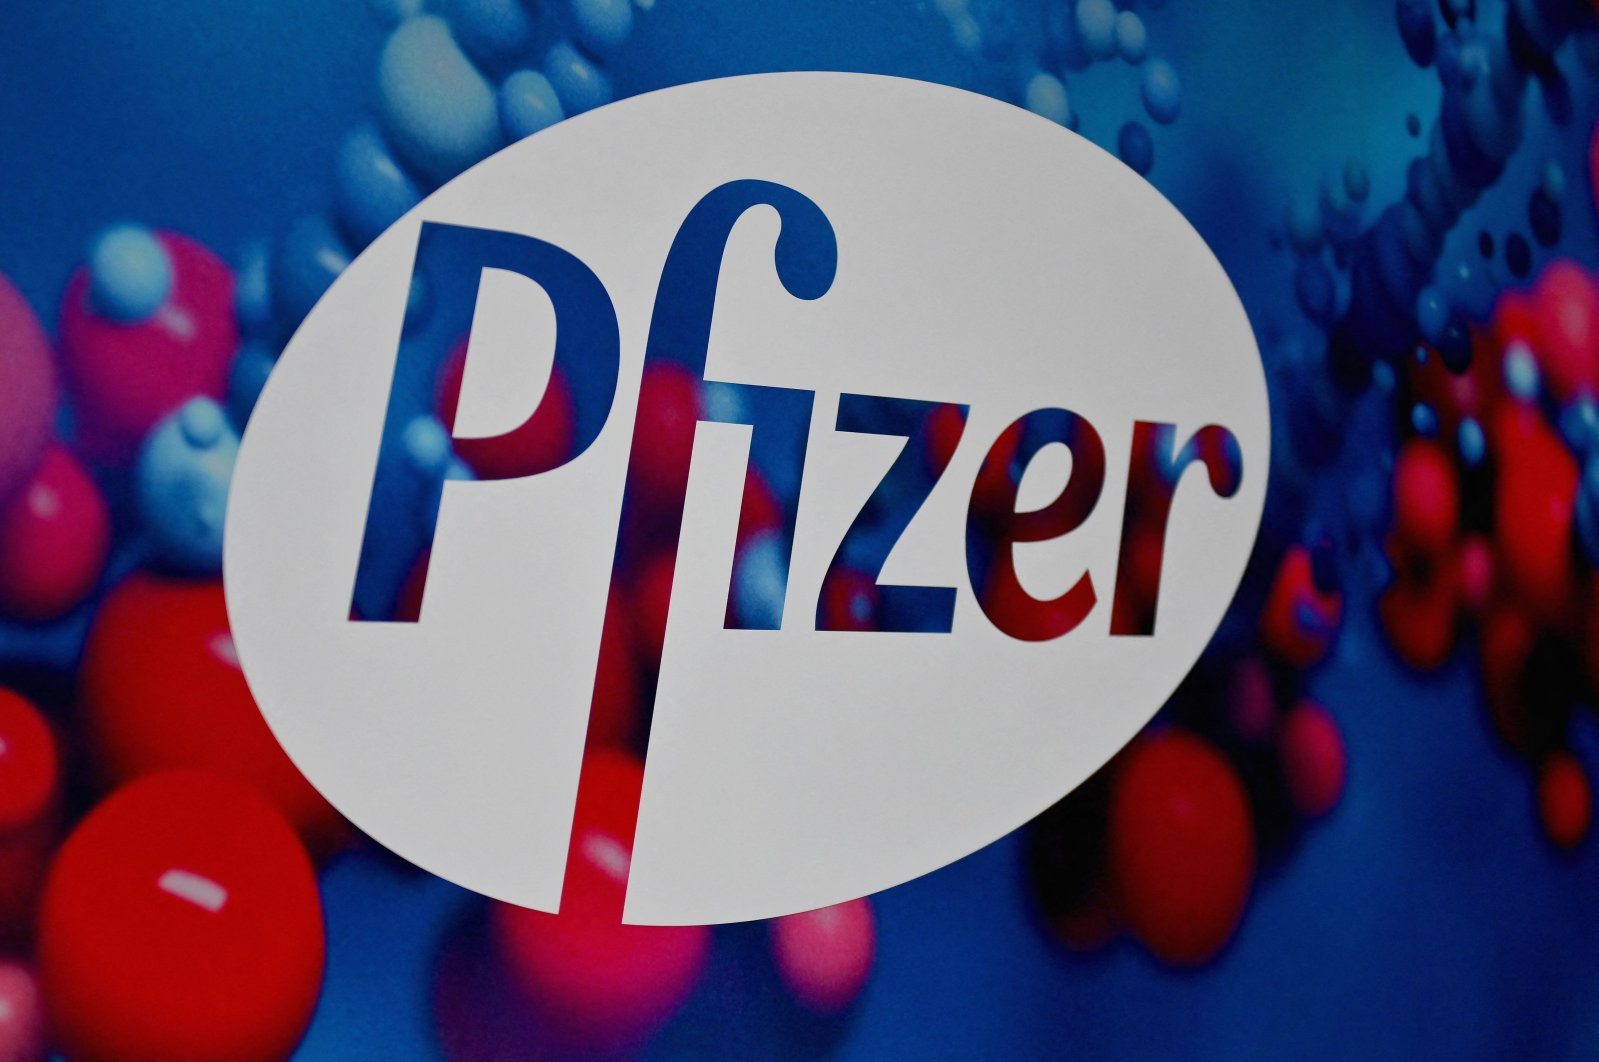 The Pfizer logo is seen at the Pfizer Inc. headquarters in New York City, U.S., Dec. 9, 2020. (AFP Photo)